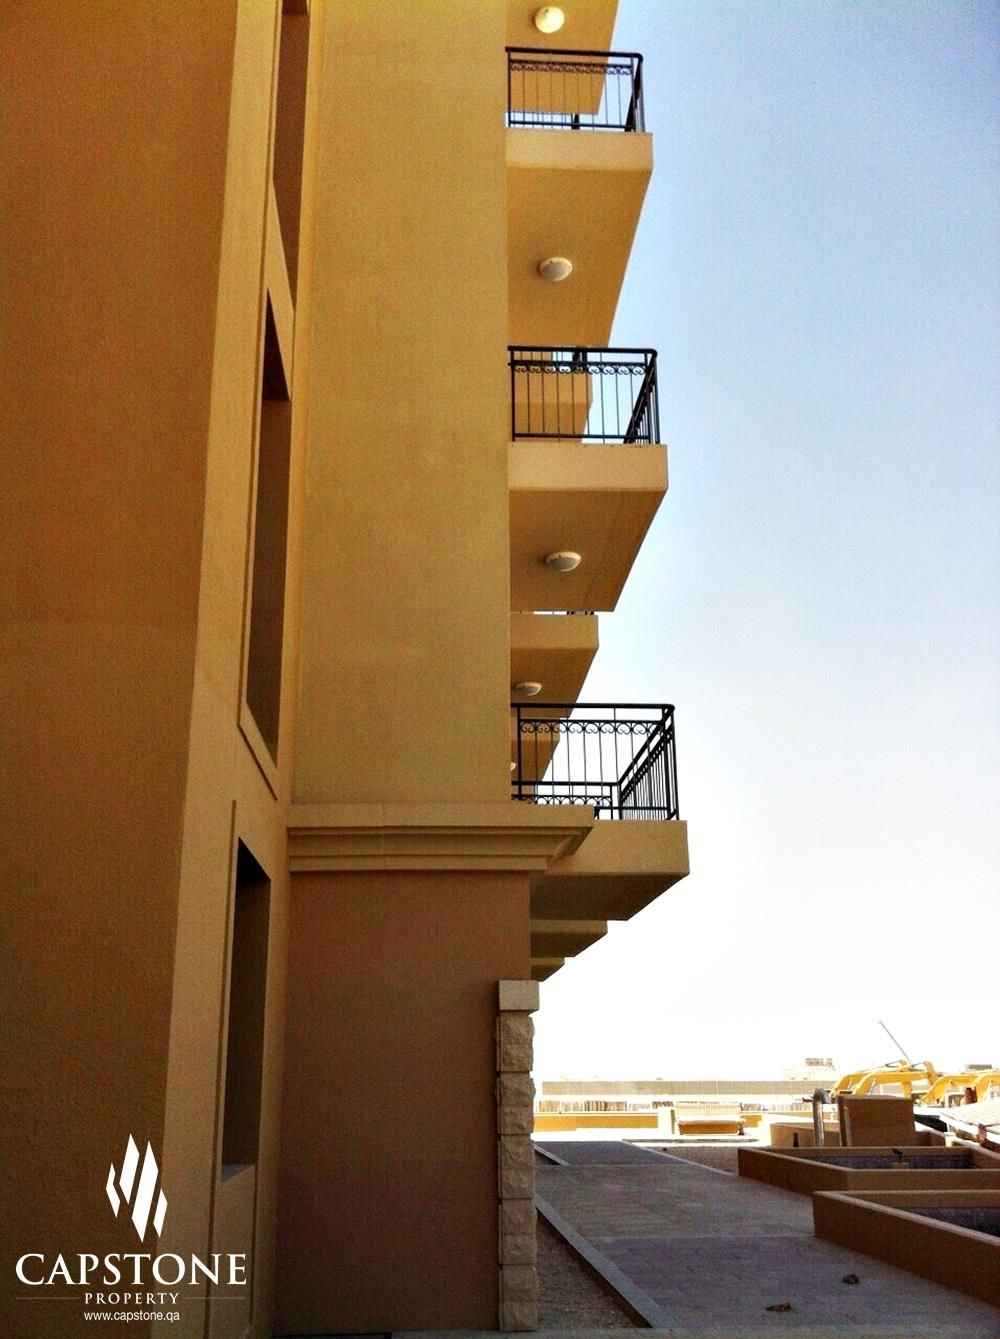 WORTHY INVESTMENT: 1-Bedroom Apartment at Lusail City Fox Hills Piazza 3 For Sale